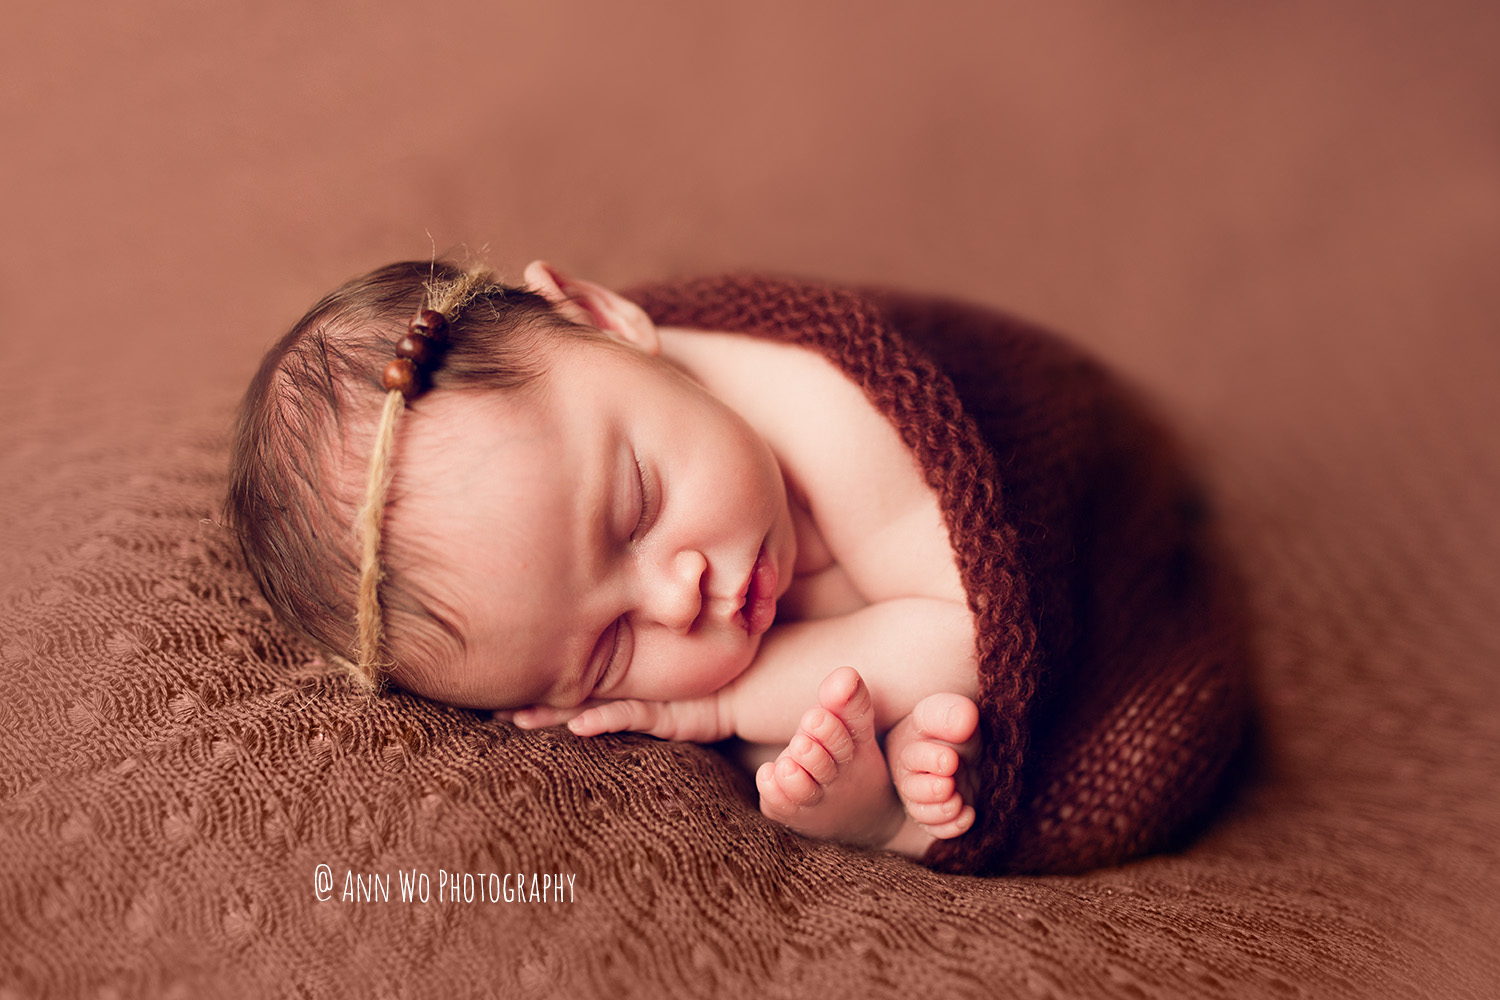 newborn-photography-knit-fabric-backdrop-posing-beanbag-brown-stretchy-london-uk-ann-wo-baby.jpg